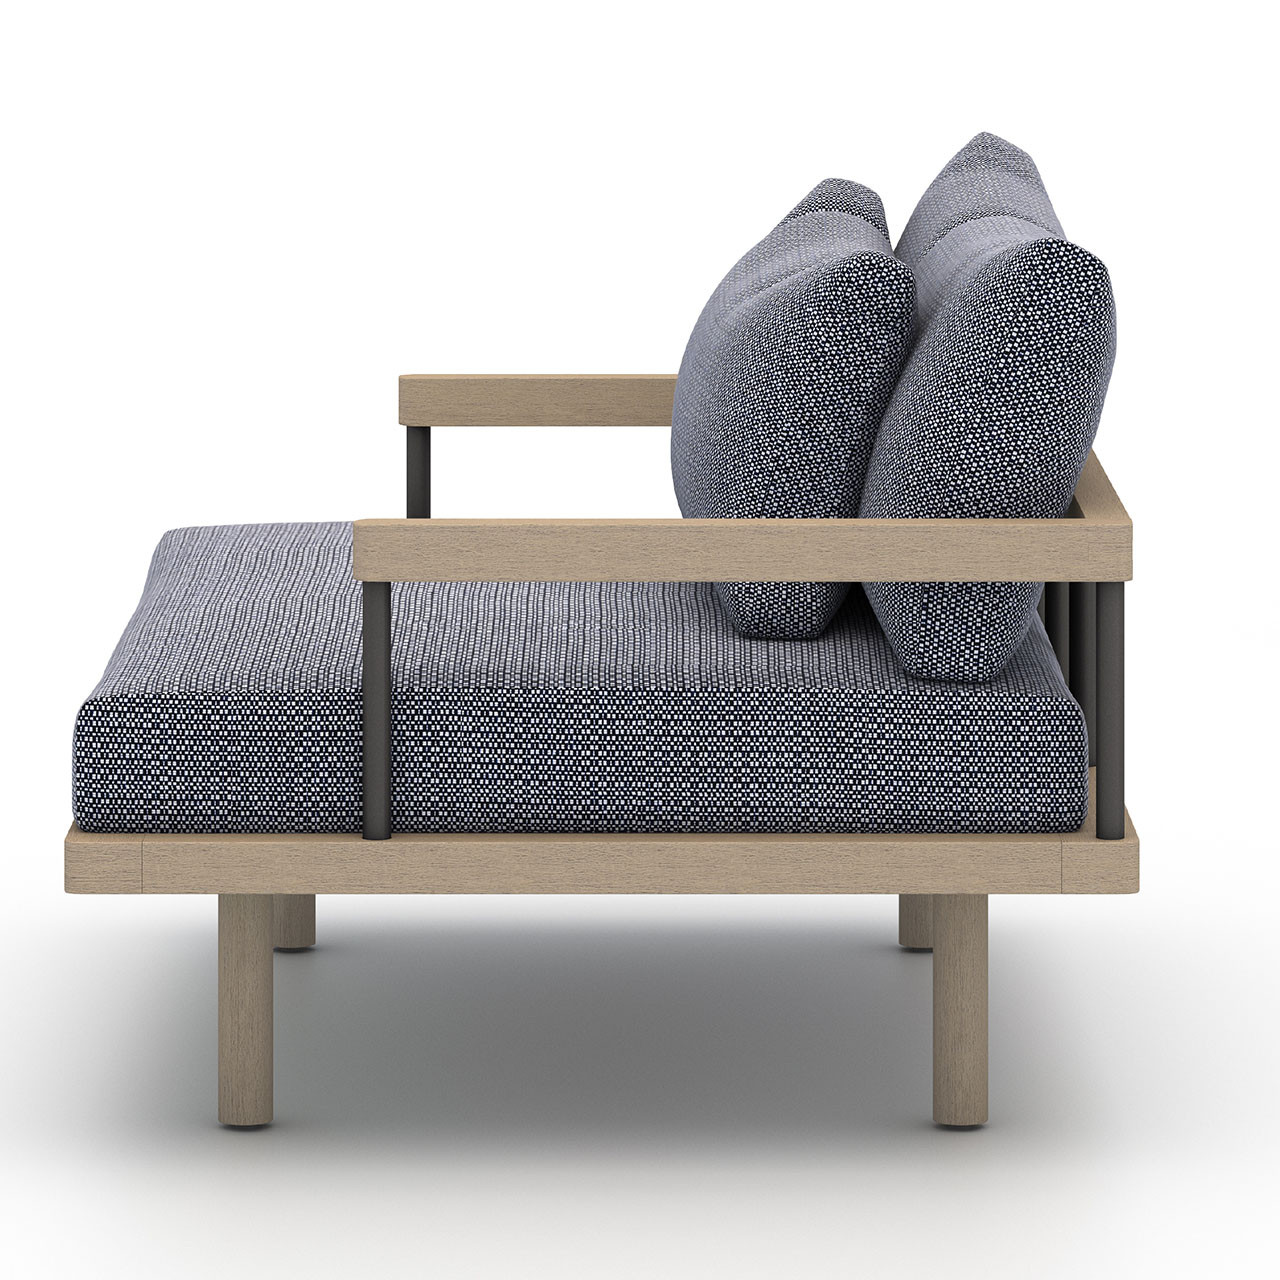 Nise Outdoor Lounge Chair - Washed Brown